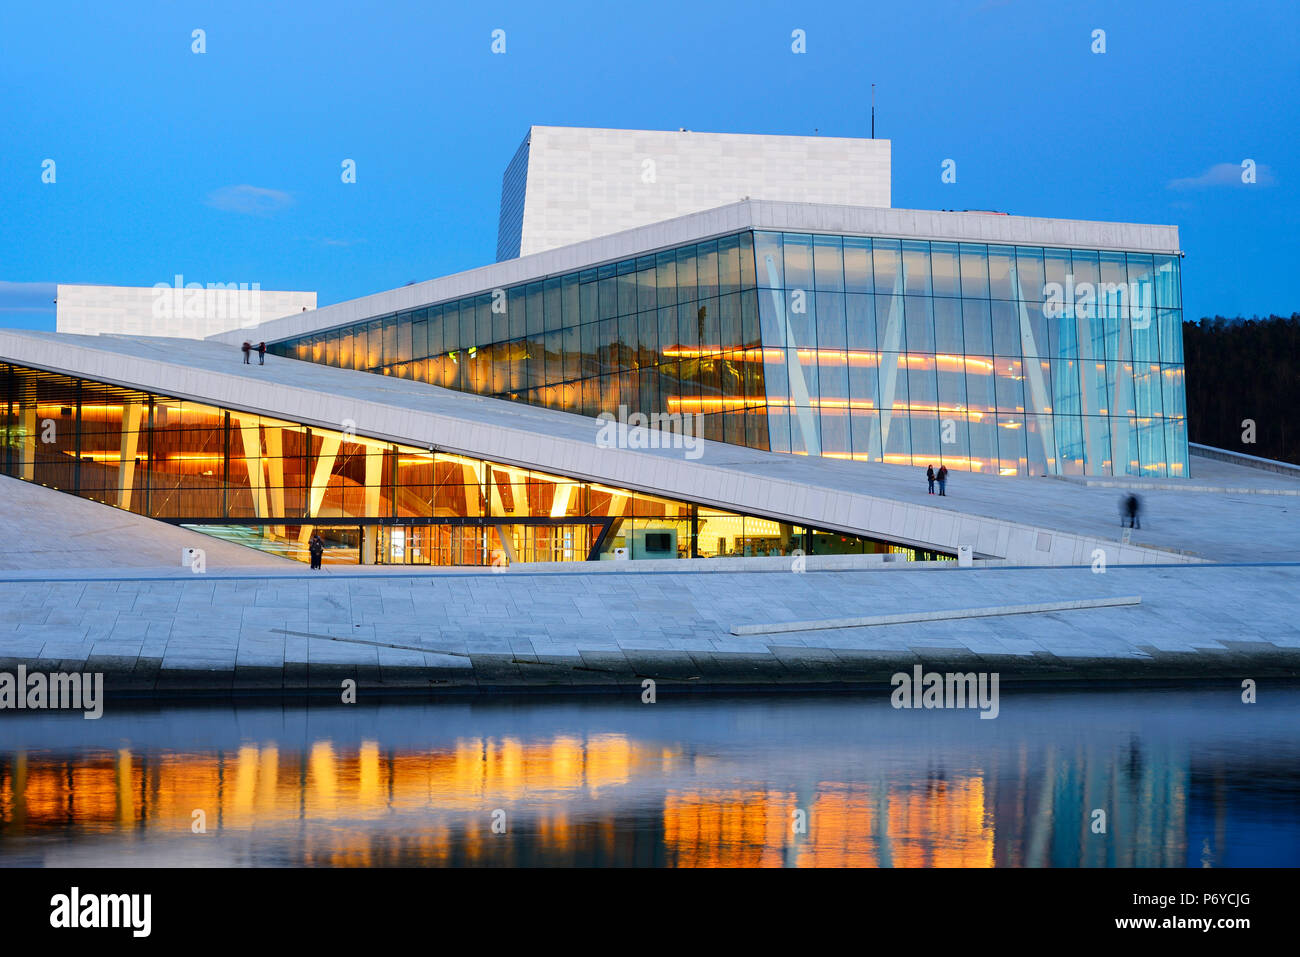 The Opera House, Norwegian National Opera and Ballet, by Snohetta architects in Bjorvika district, in the evening. Oslo, Norway - Stock Image